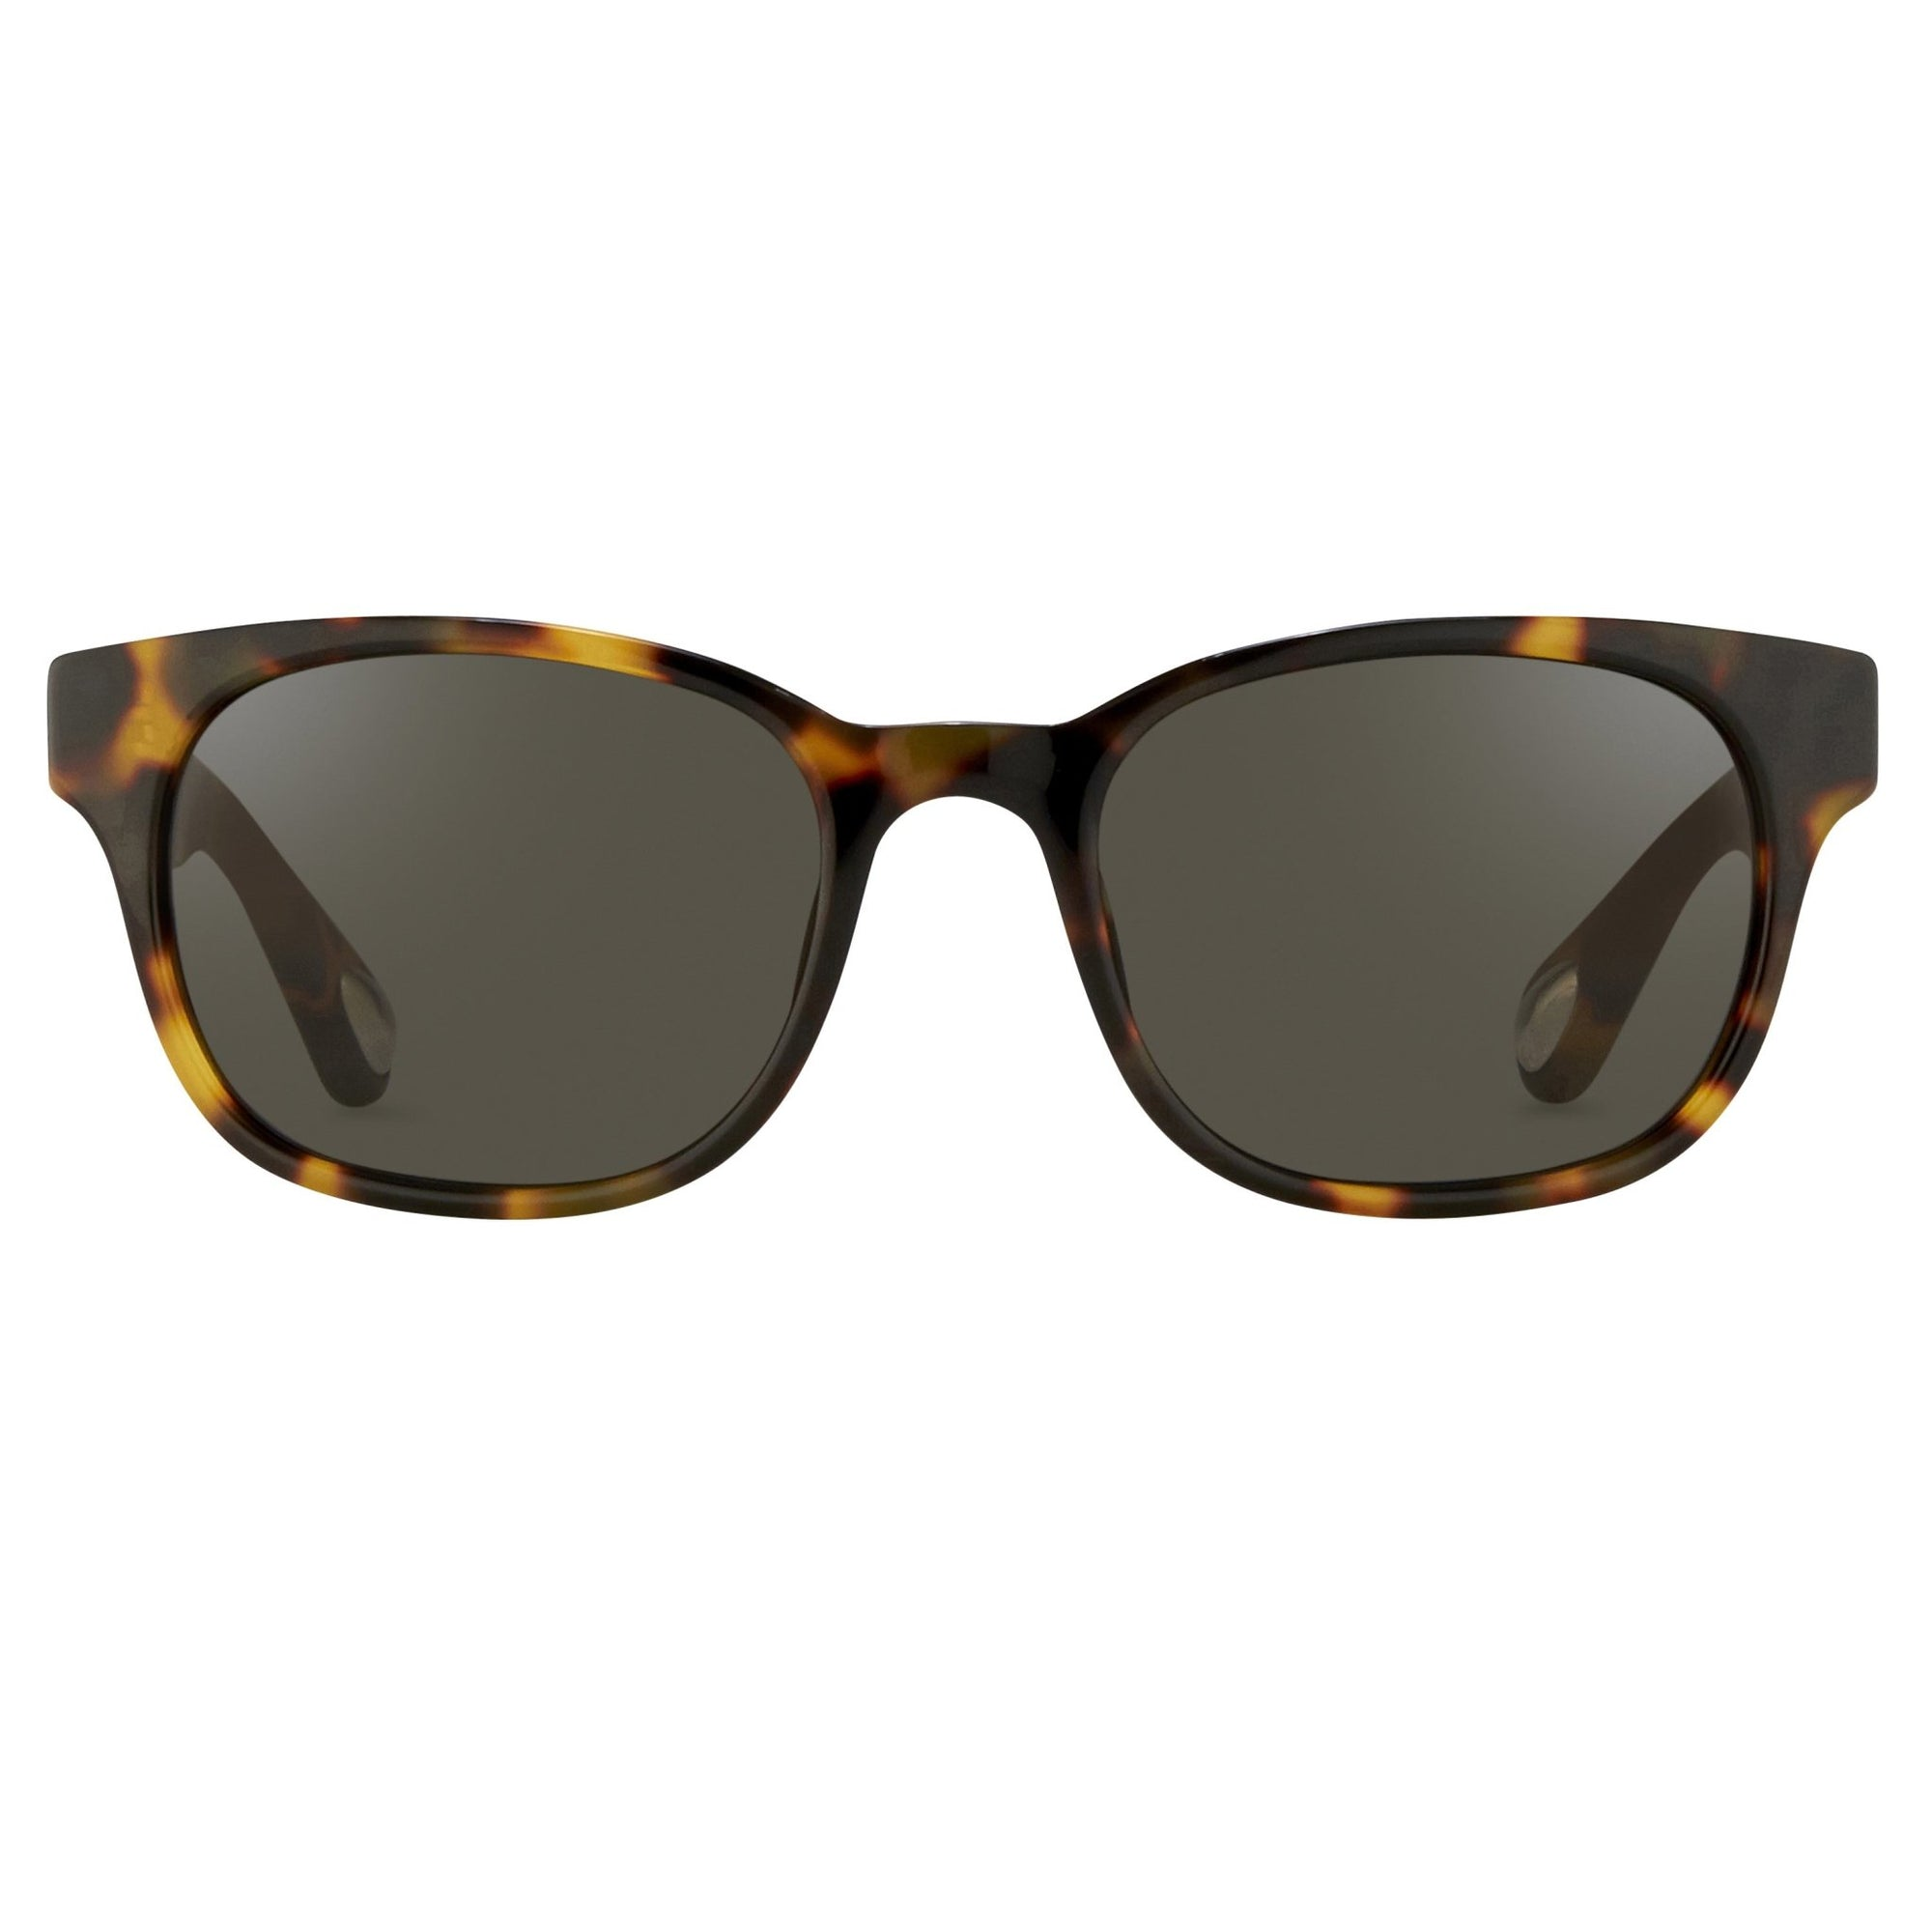 Ann Demeulemeester Sunglasses Rectangular Tortoise Shell and Grey